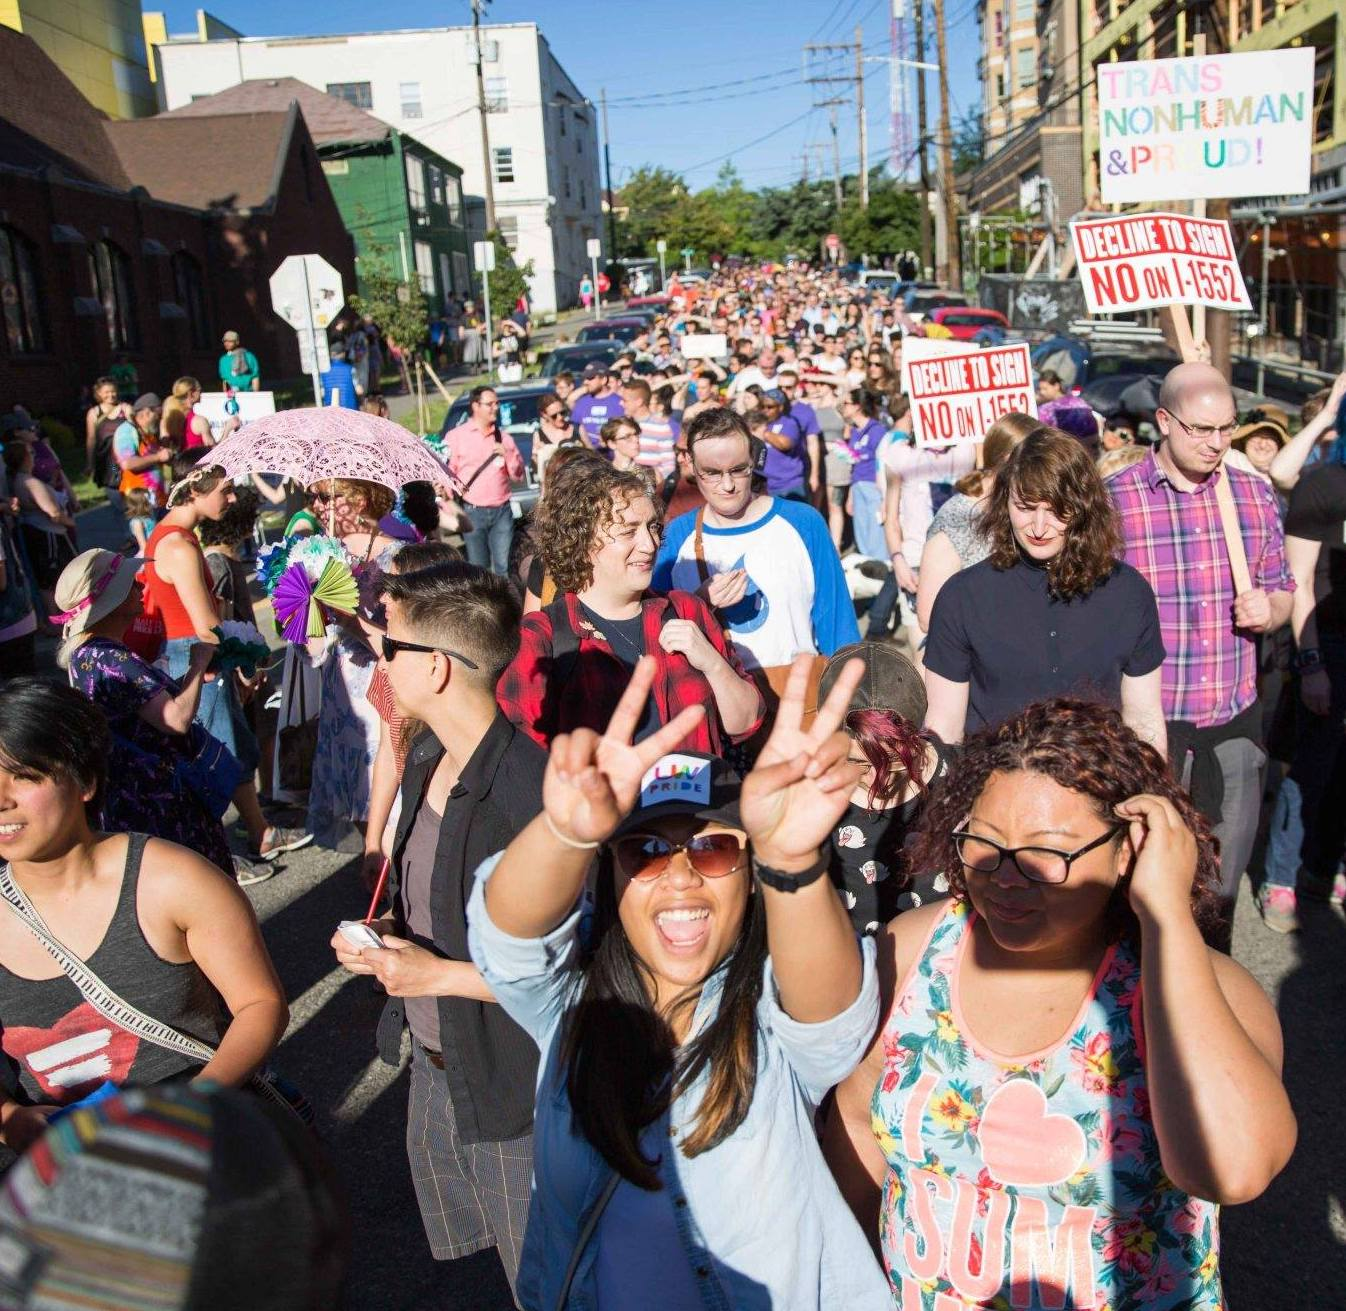 A crowd at the annual Trans Pride march